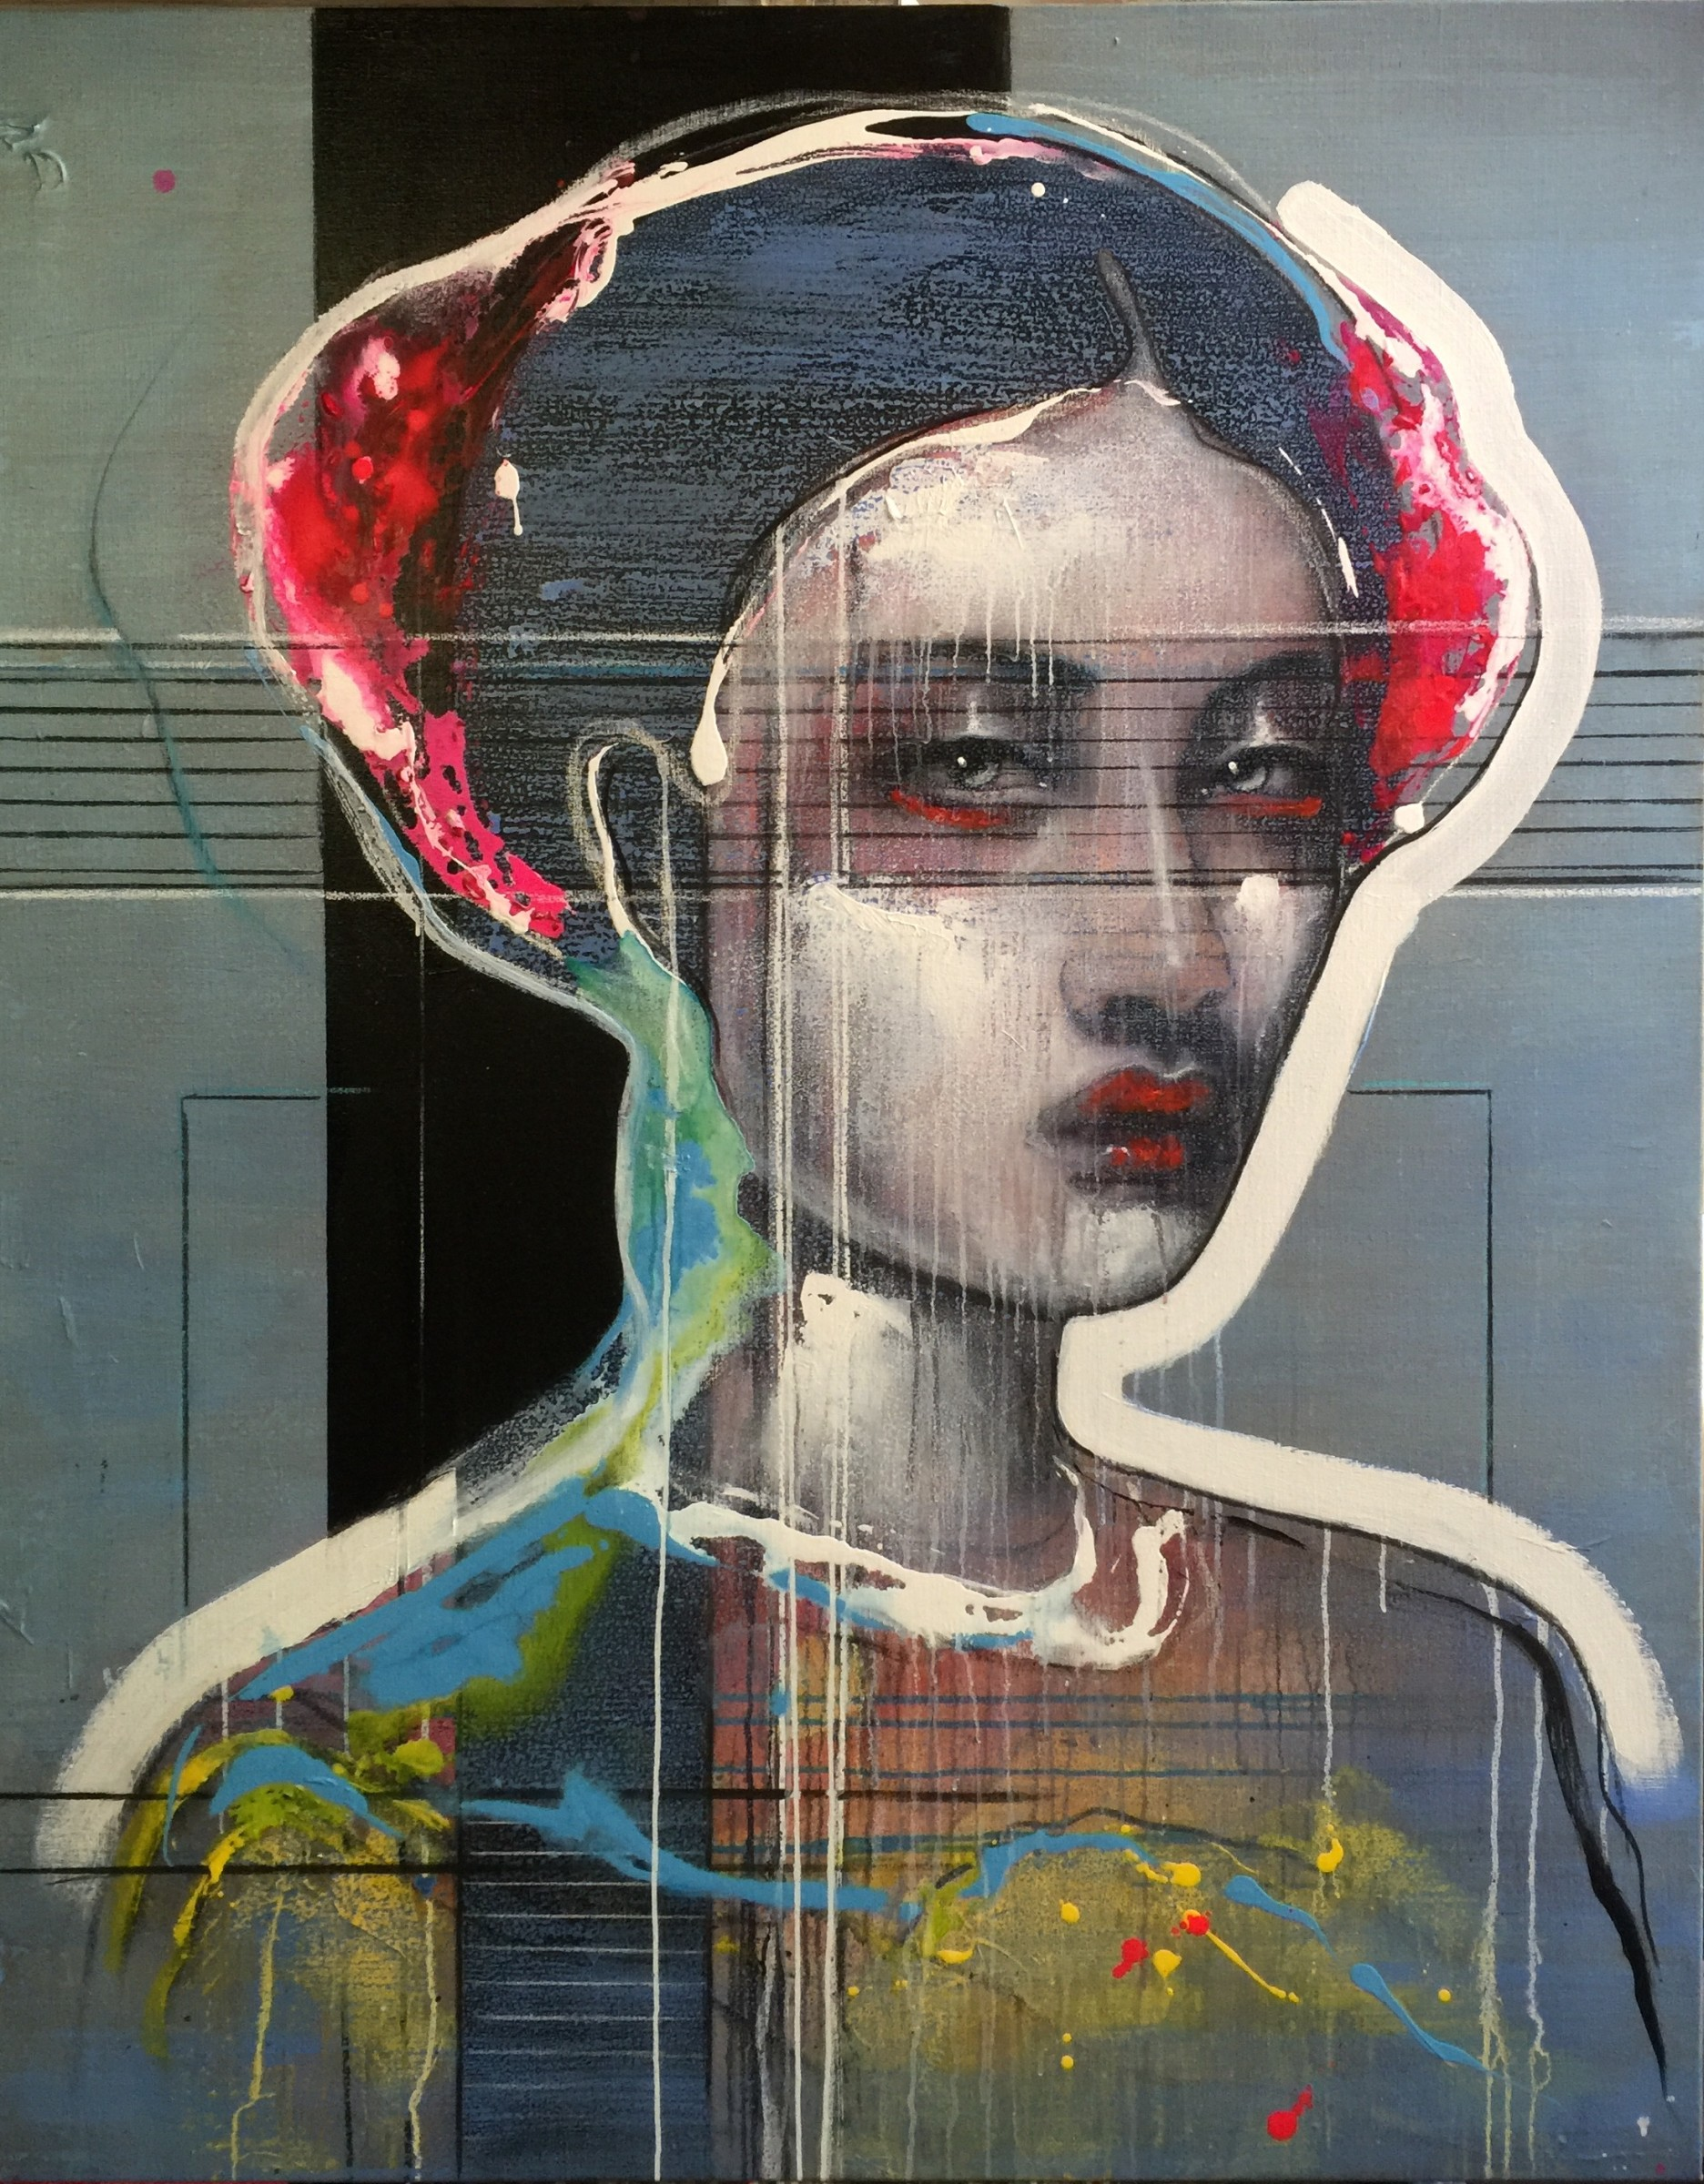 <span class=&#34;link fancybox-details-link&#34;><a href=&#34;/artists/40-ger-doornink/works/4700-ger-doornink-mona-lisa-2018/&#34;>View Detail Page</a></span><div class=&#34;artist&#34;><strong>Ger Doornink</strong></div> <div class=&#34;title&#34;><em>Mona Lisa</em>, 2018</div> <div class=&#34;medium&#34;>HD finish</div> <div class=&#34;dimensions&#34;>150 x 120 cm</div> <div class=&#34;edition_details&#34;>Edition 1 of 12</div>